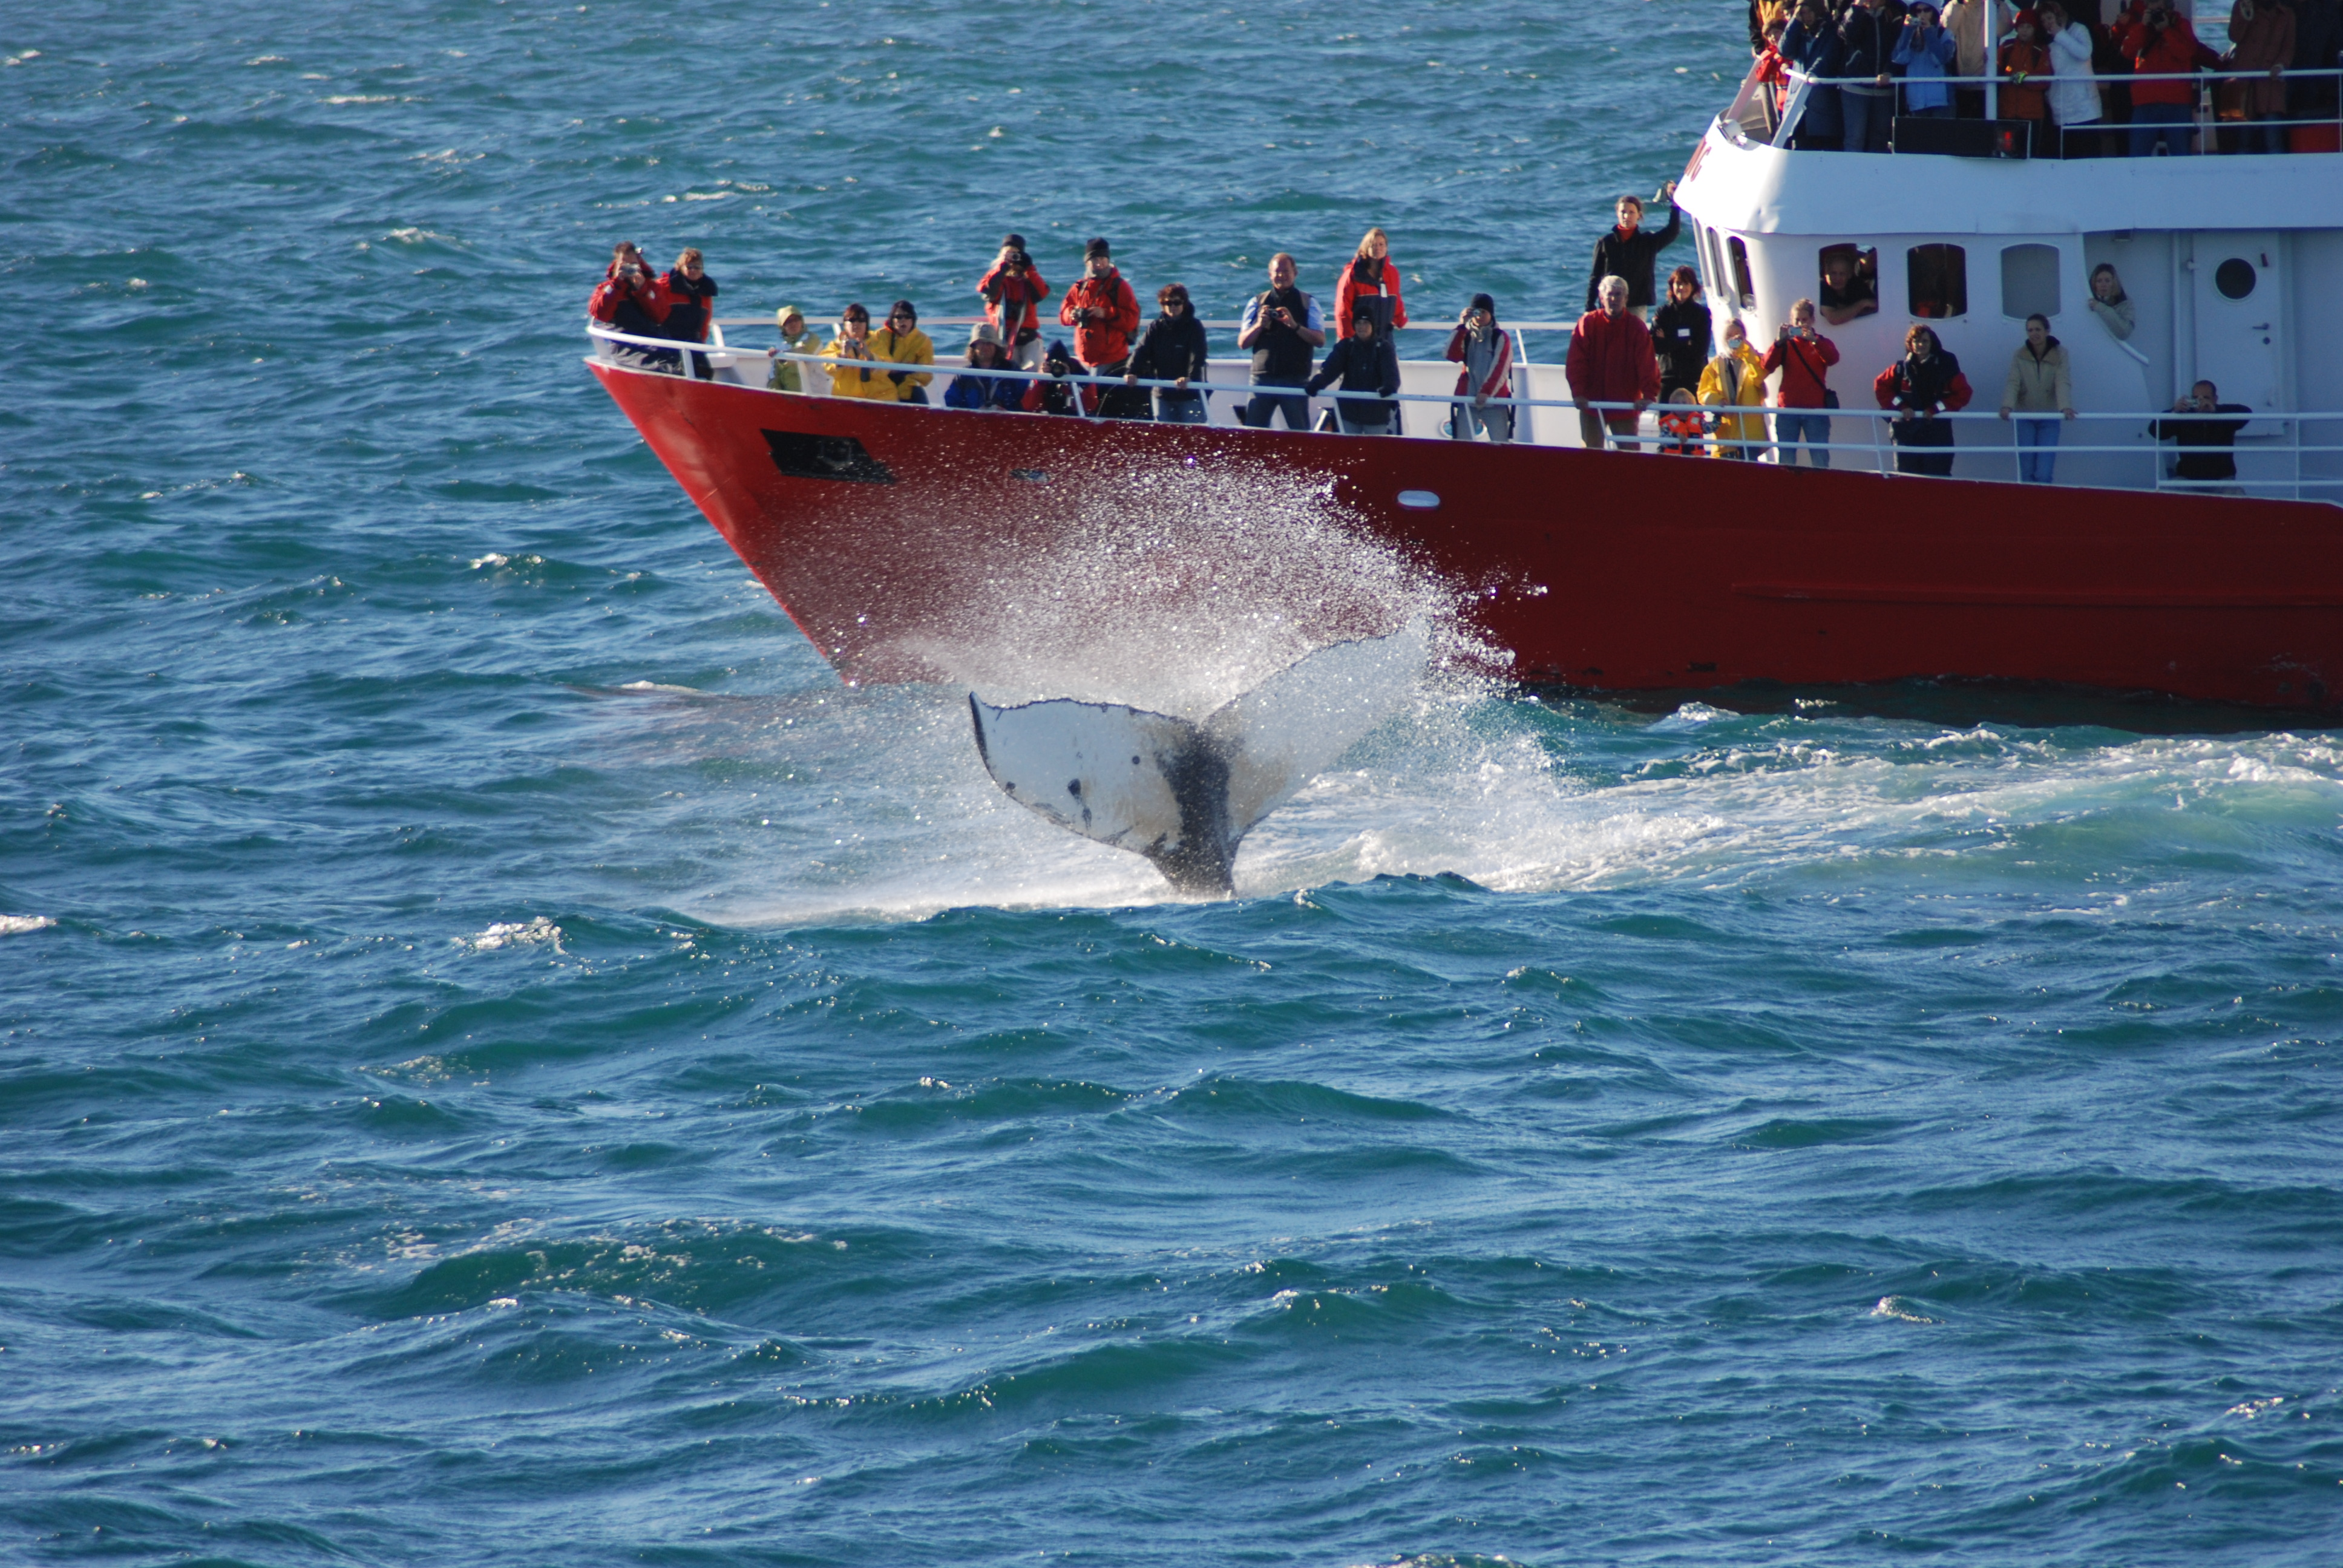 Get to see the whales up close.